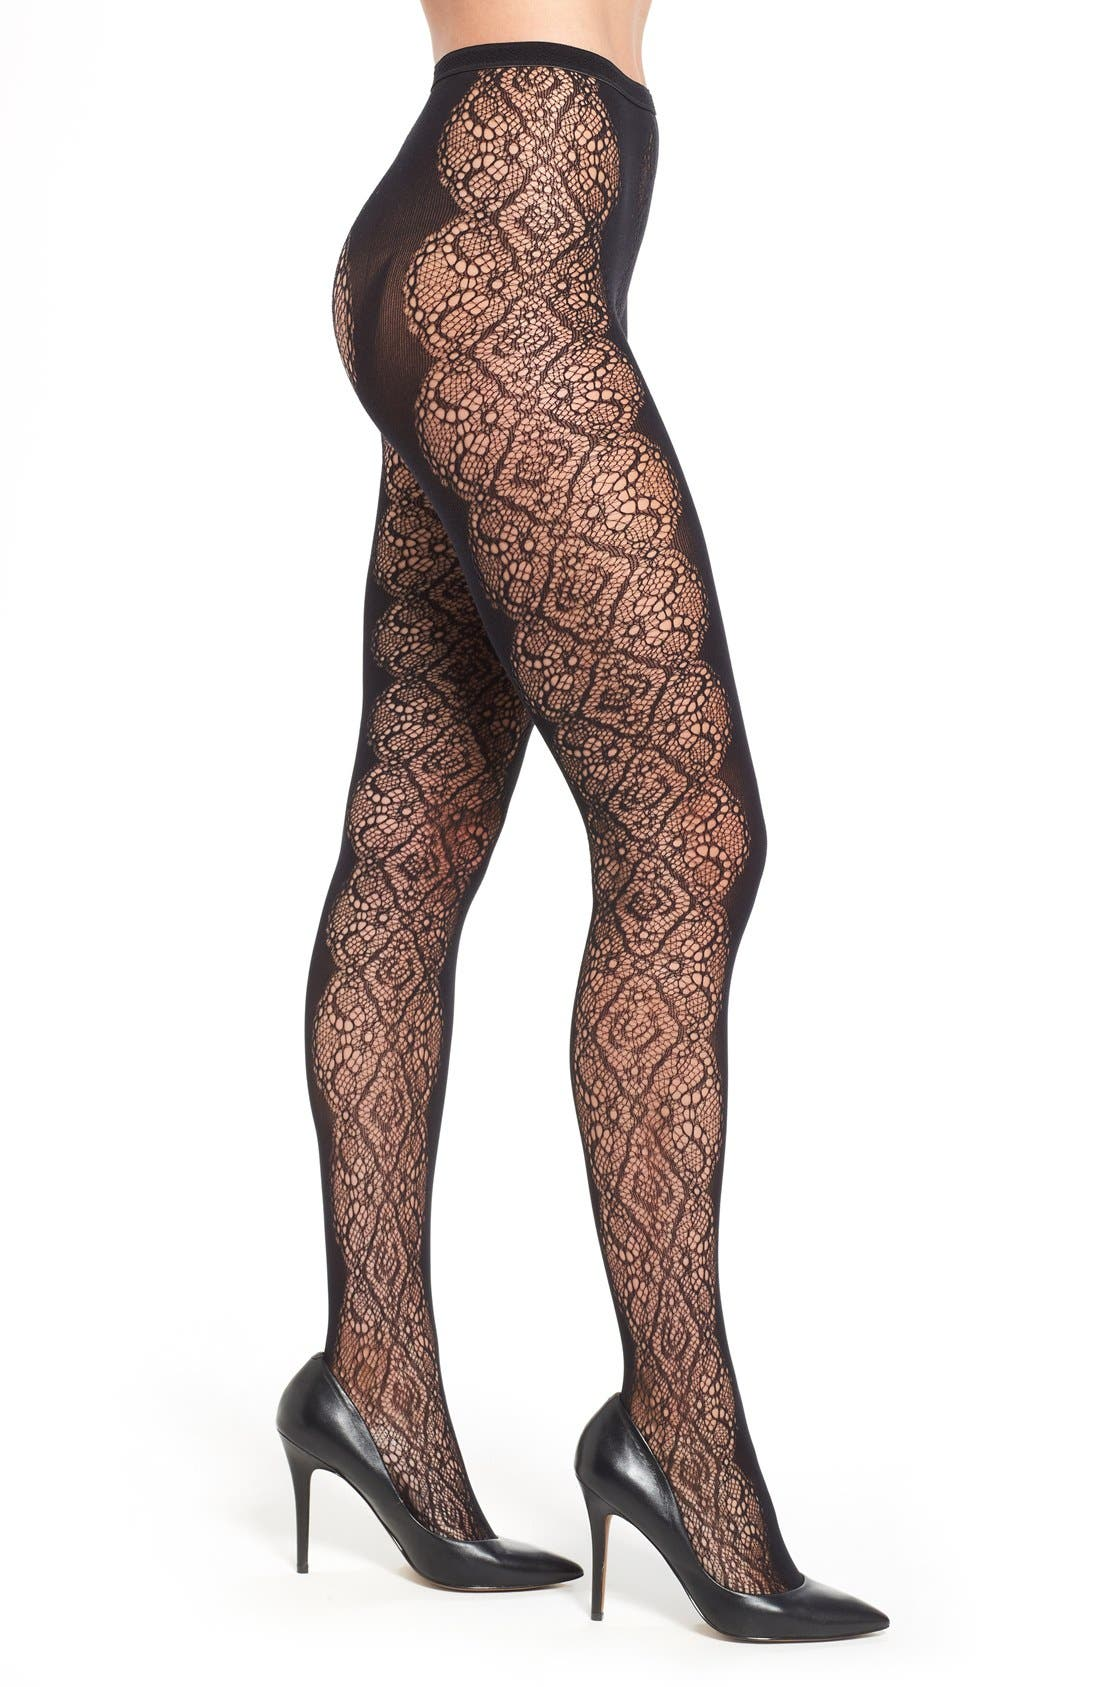 Main Image - Nordstrom Scallop Lace Tights